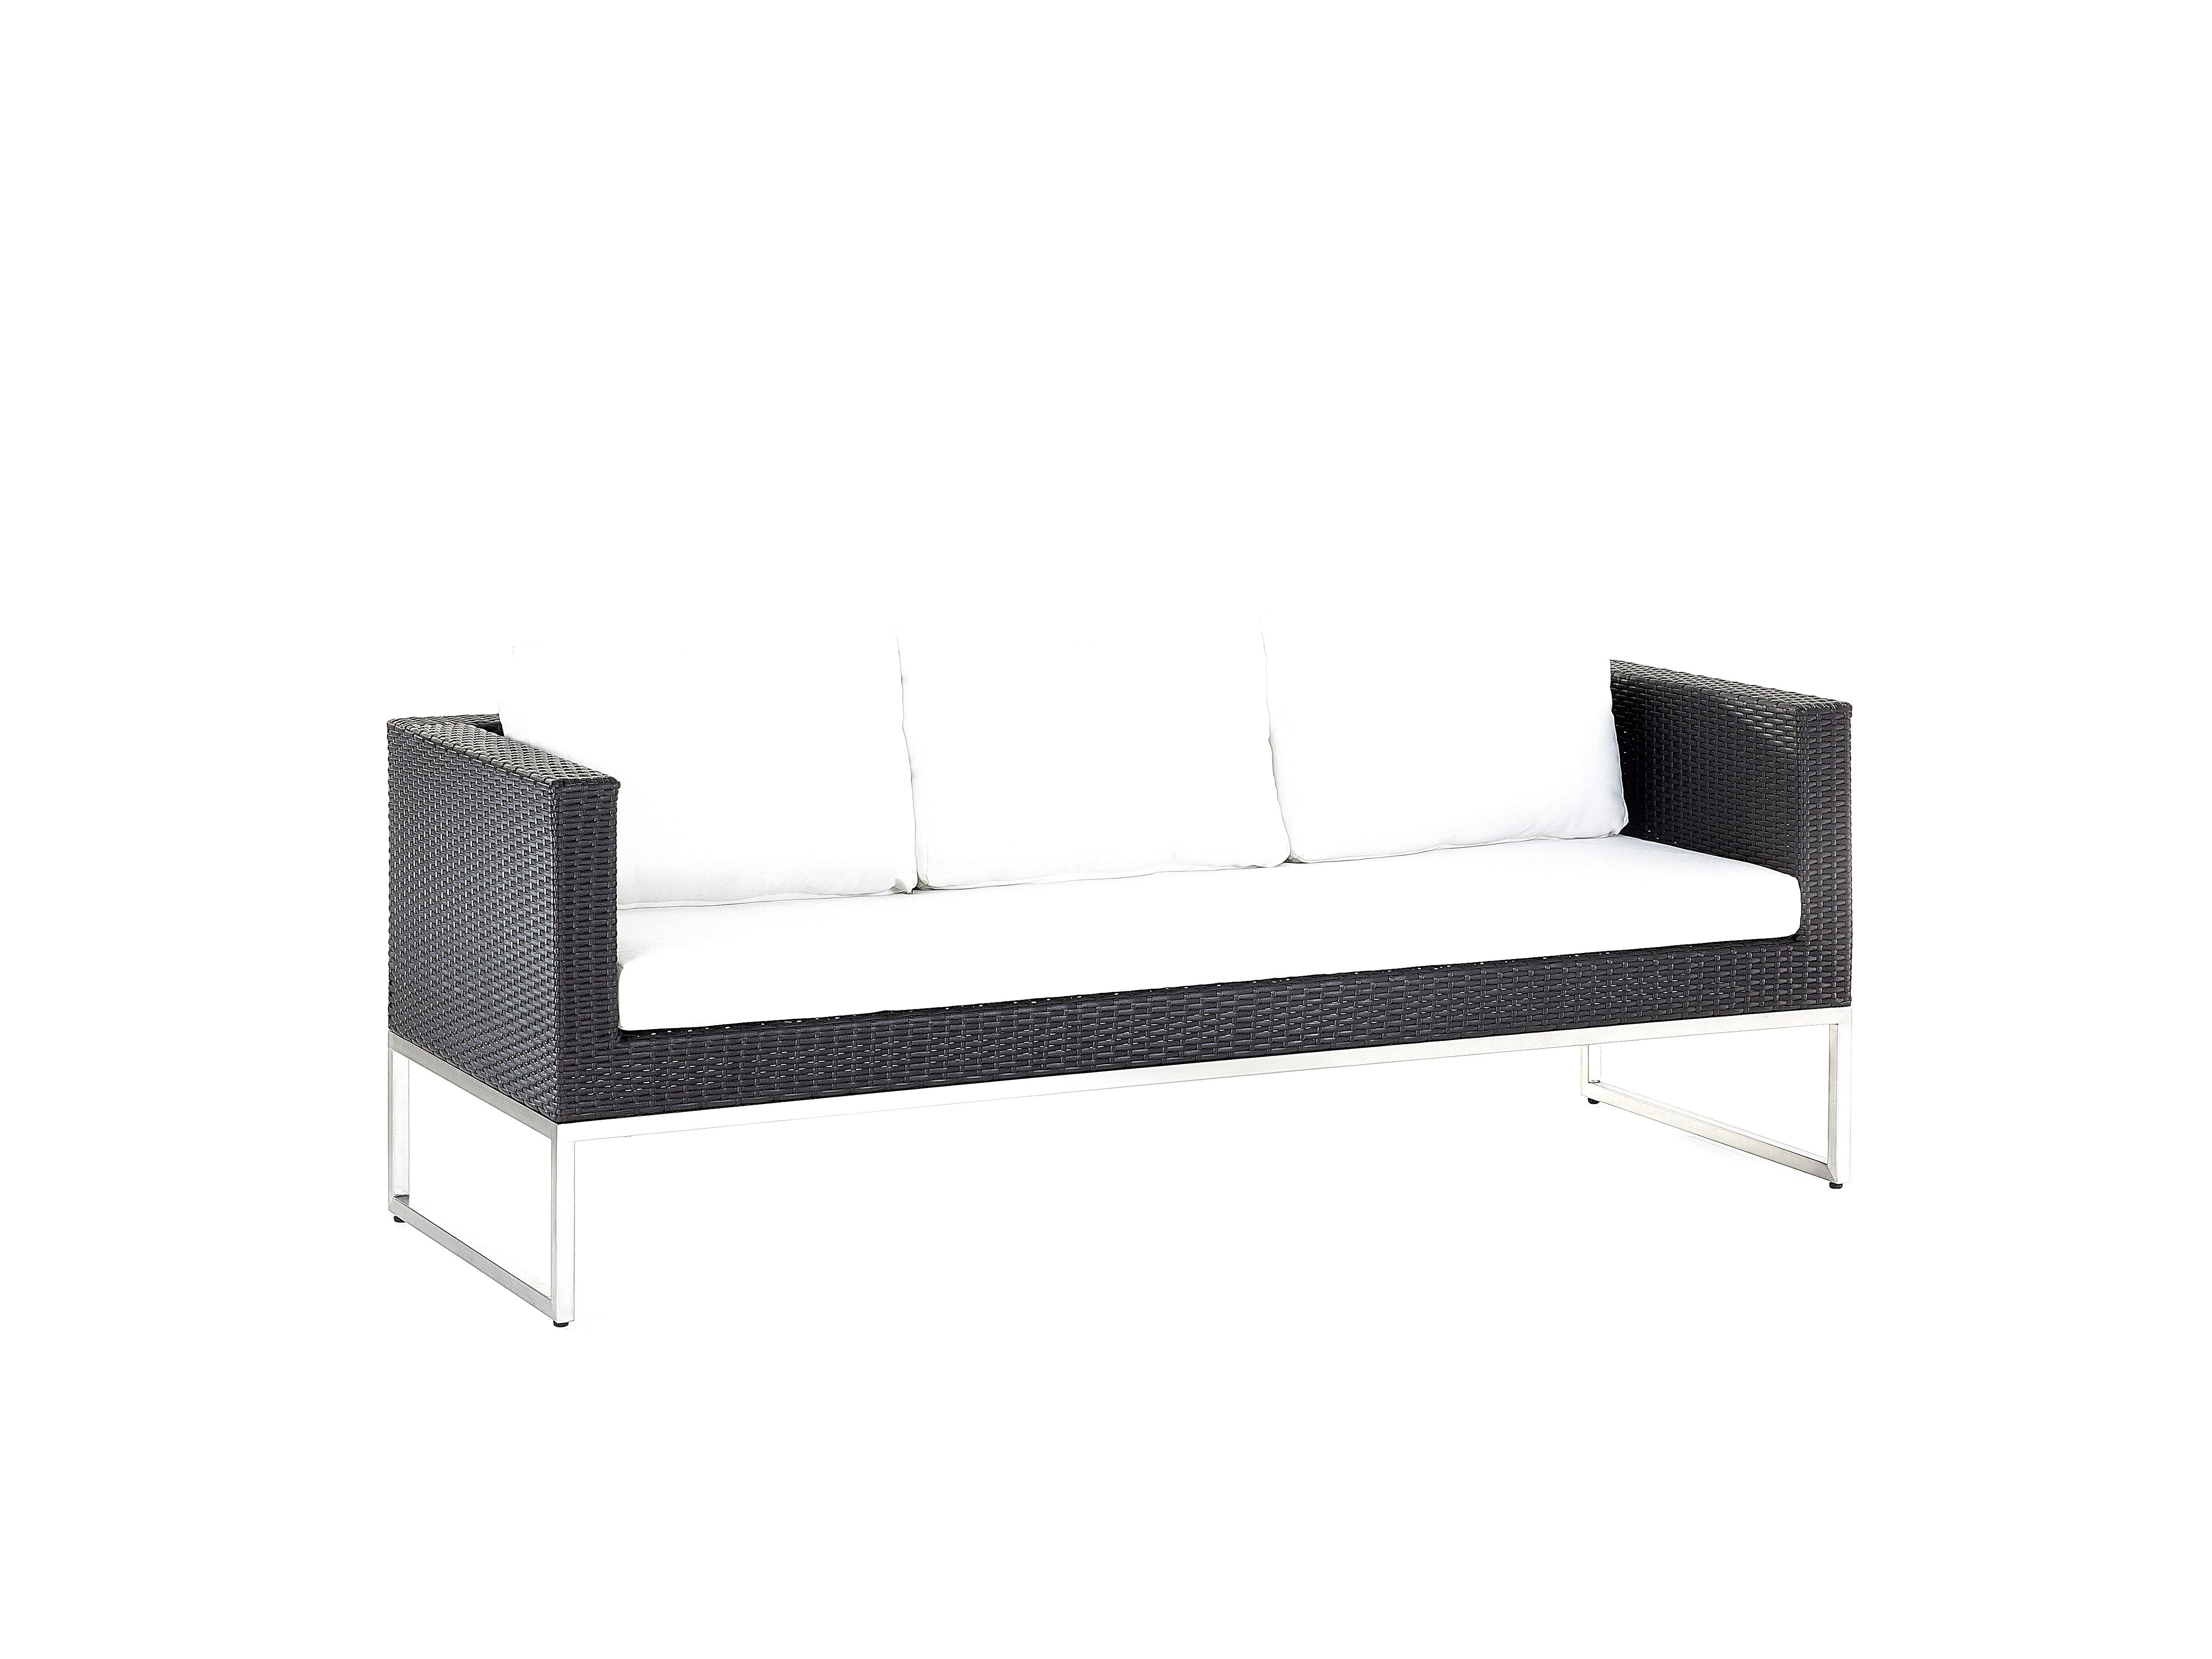 Amusant Otto Mobel Couch Couch Mobel Furniture Outdoor Sofa Couch